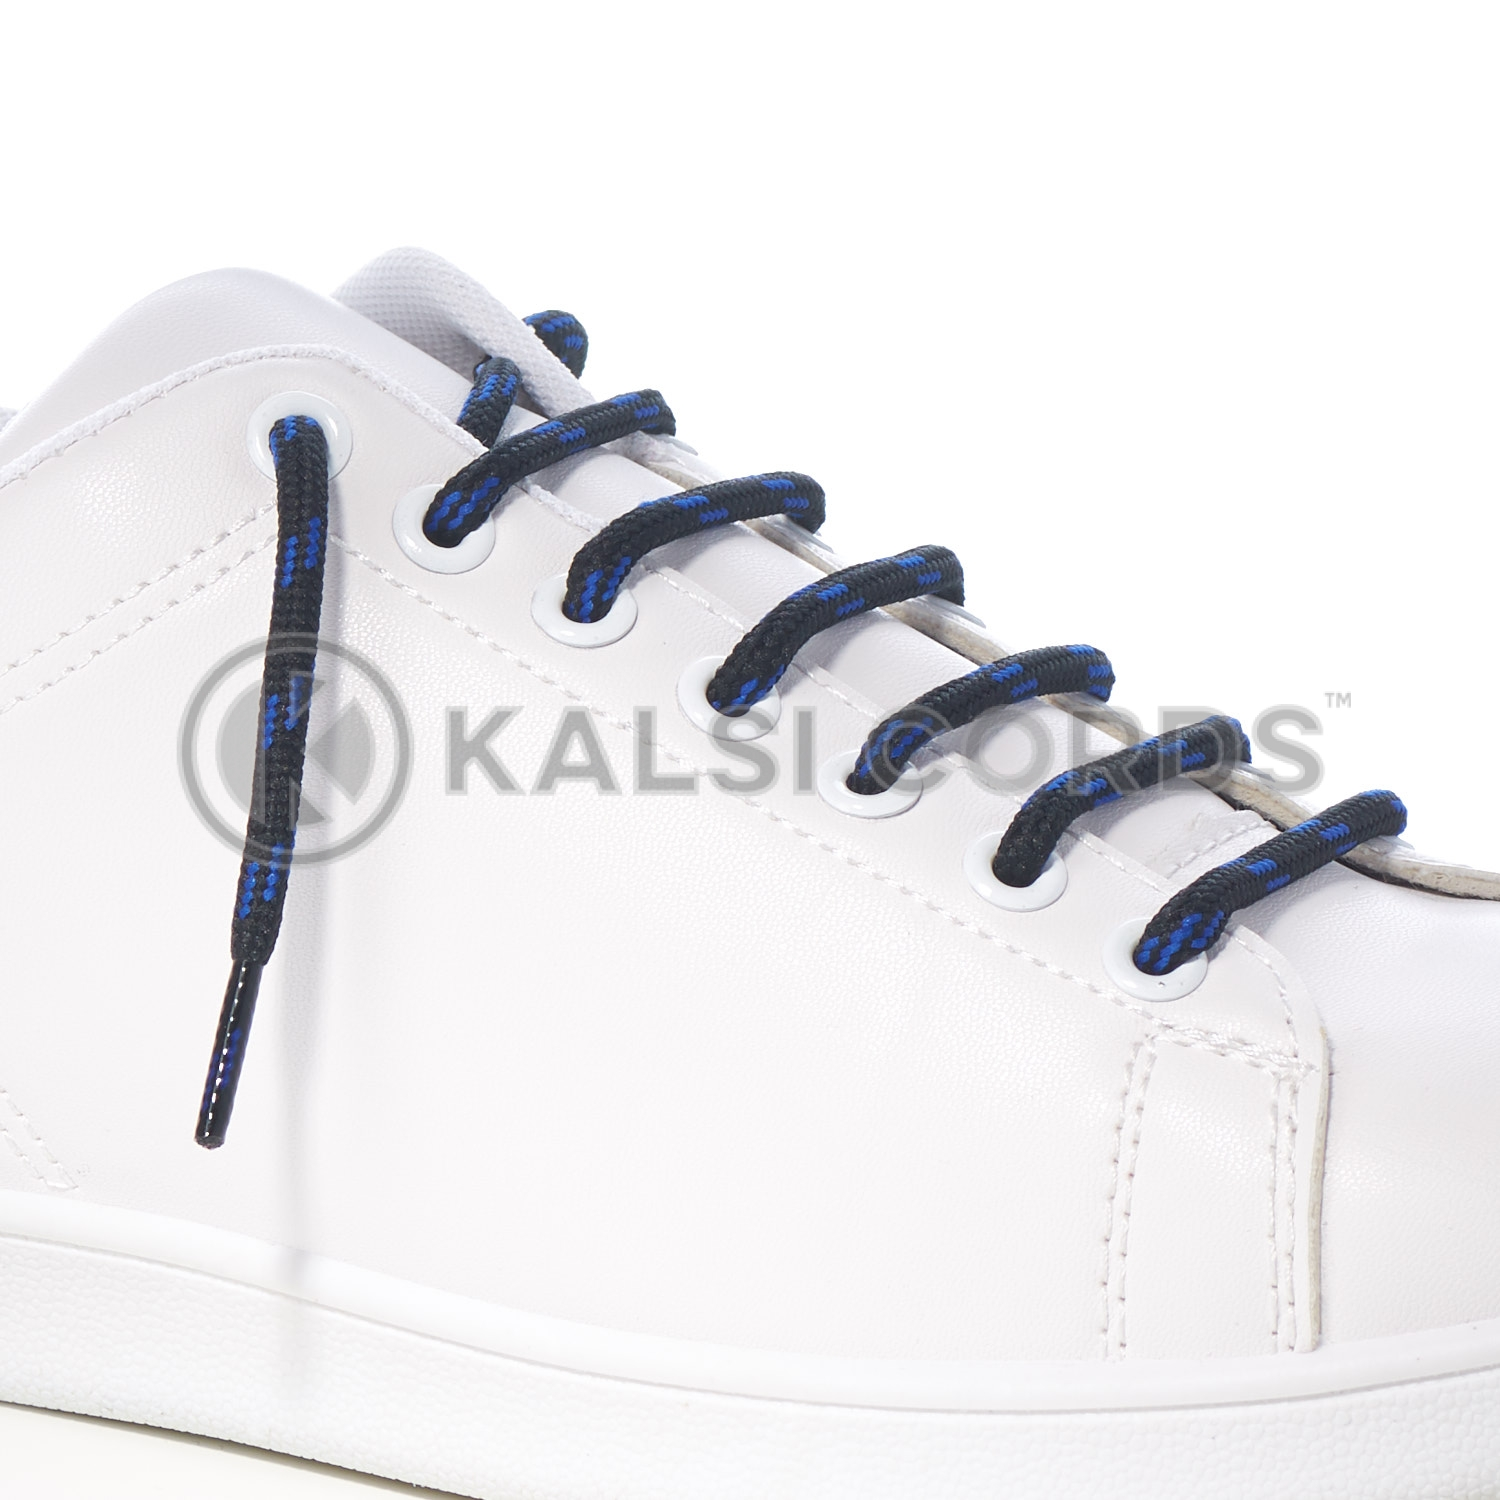 T621 5mm Round Cord Shoe Lace Black Royal Blue 4 Fleck Kids Trainers Adults Hiking Walking Boots Kalsi Cords